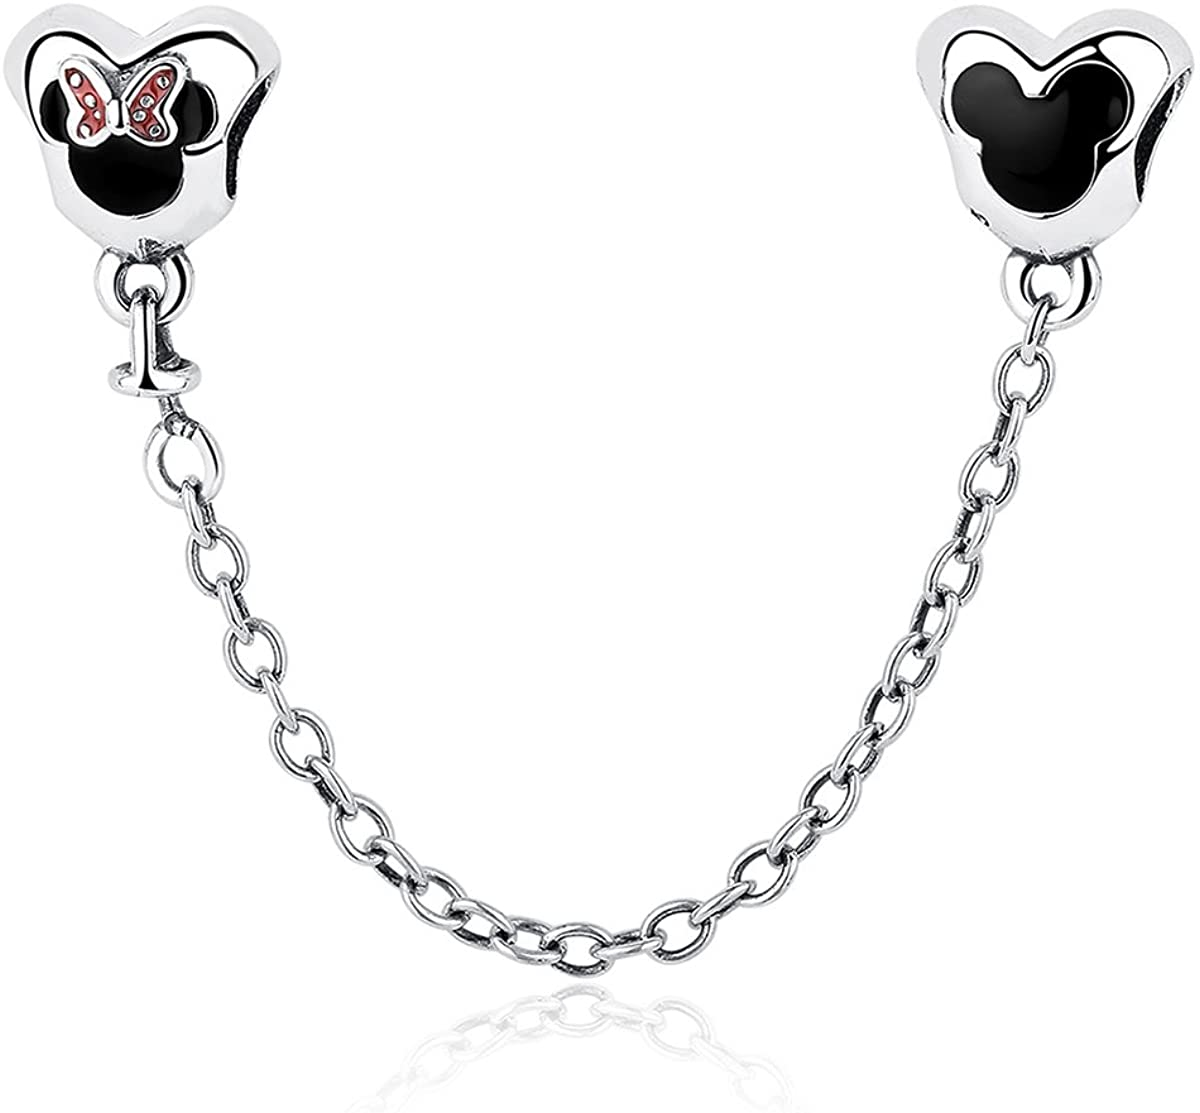 NINGAN Family & Disney Mickey & Minnie Charms for Charms Bracelet 925 Sterling Silver Beads Fit Women's Bracelets & Necklaces, Happy Birthday Charms for Women Girls Boy Men